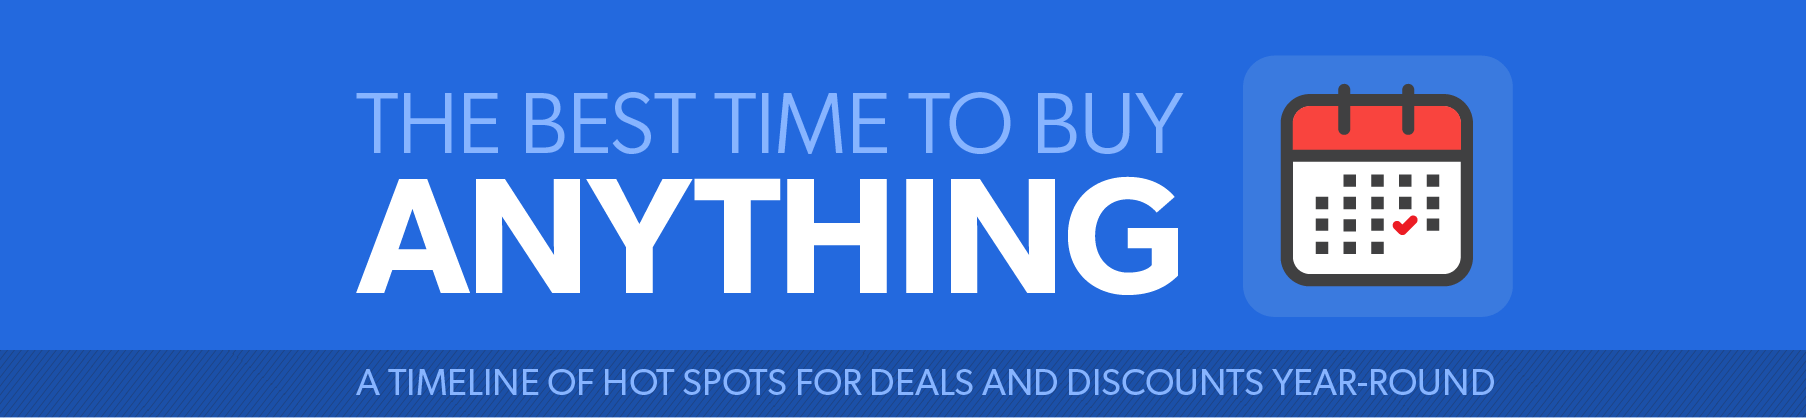 The Best Time To Buy Anything: A Timeline of Hotspots for Deals and Discounts Year-round